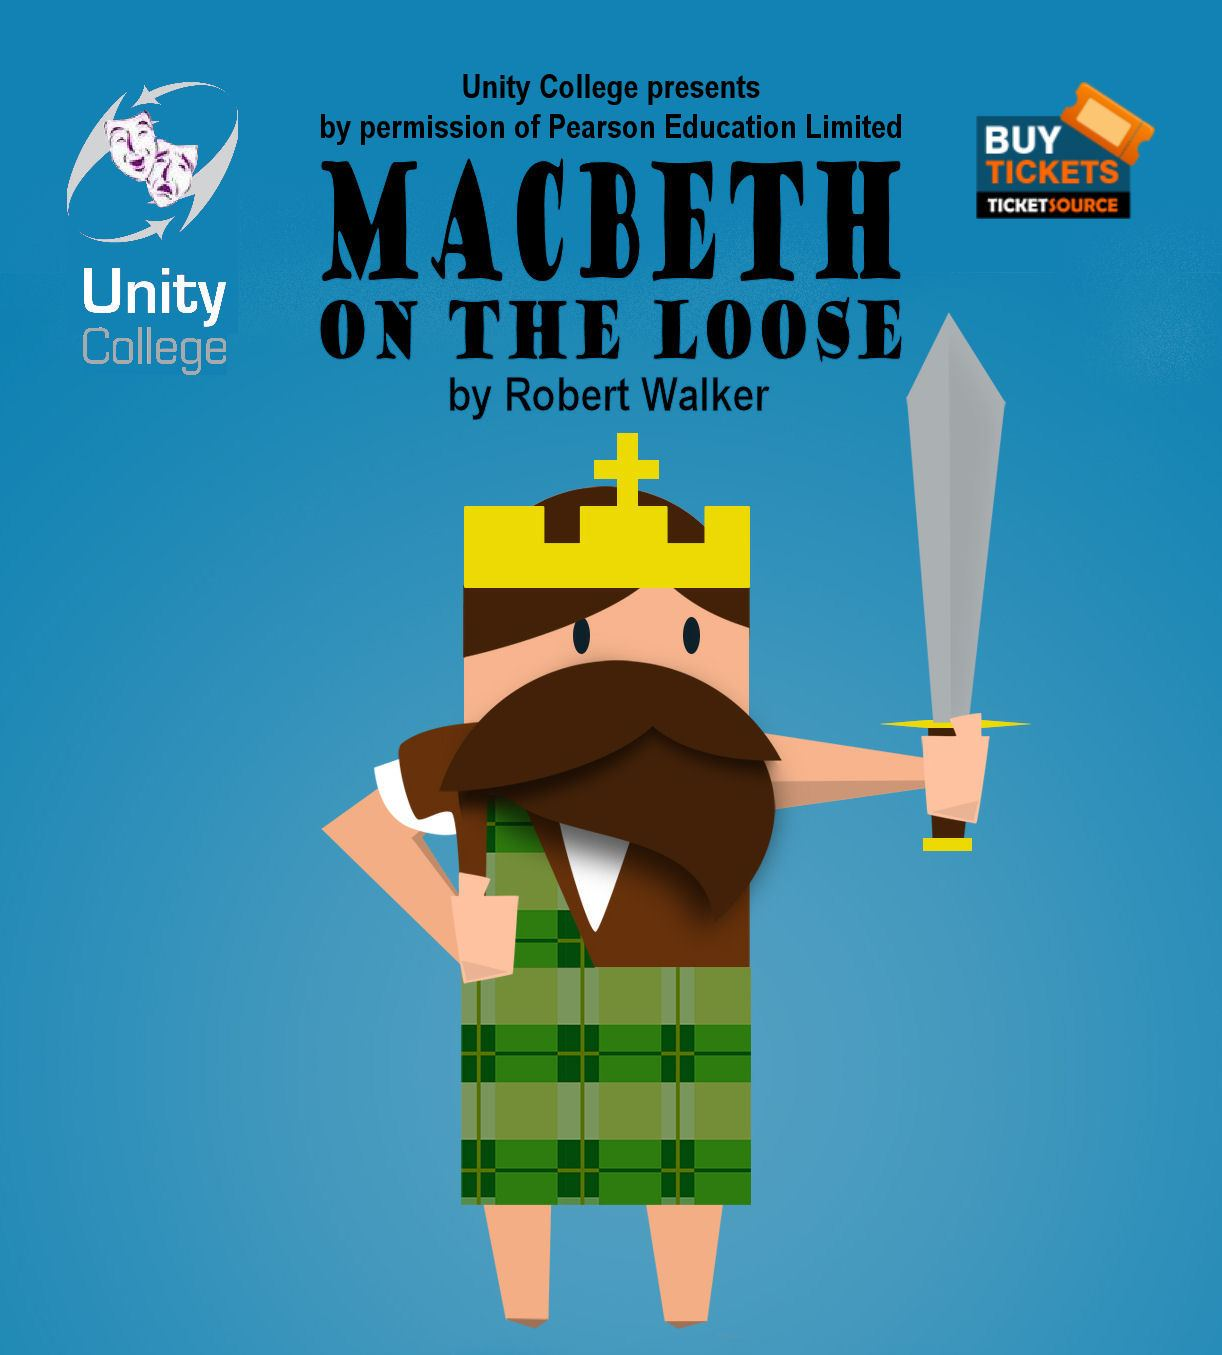 2015 (7) Macbeth on the Loose Poster 2